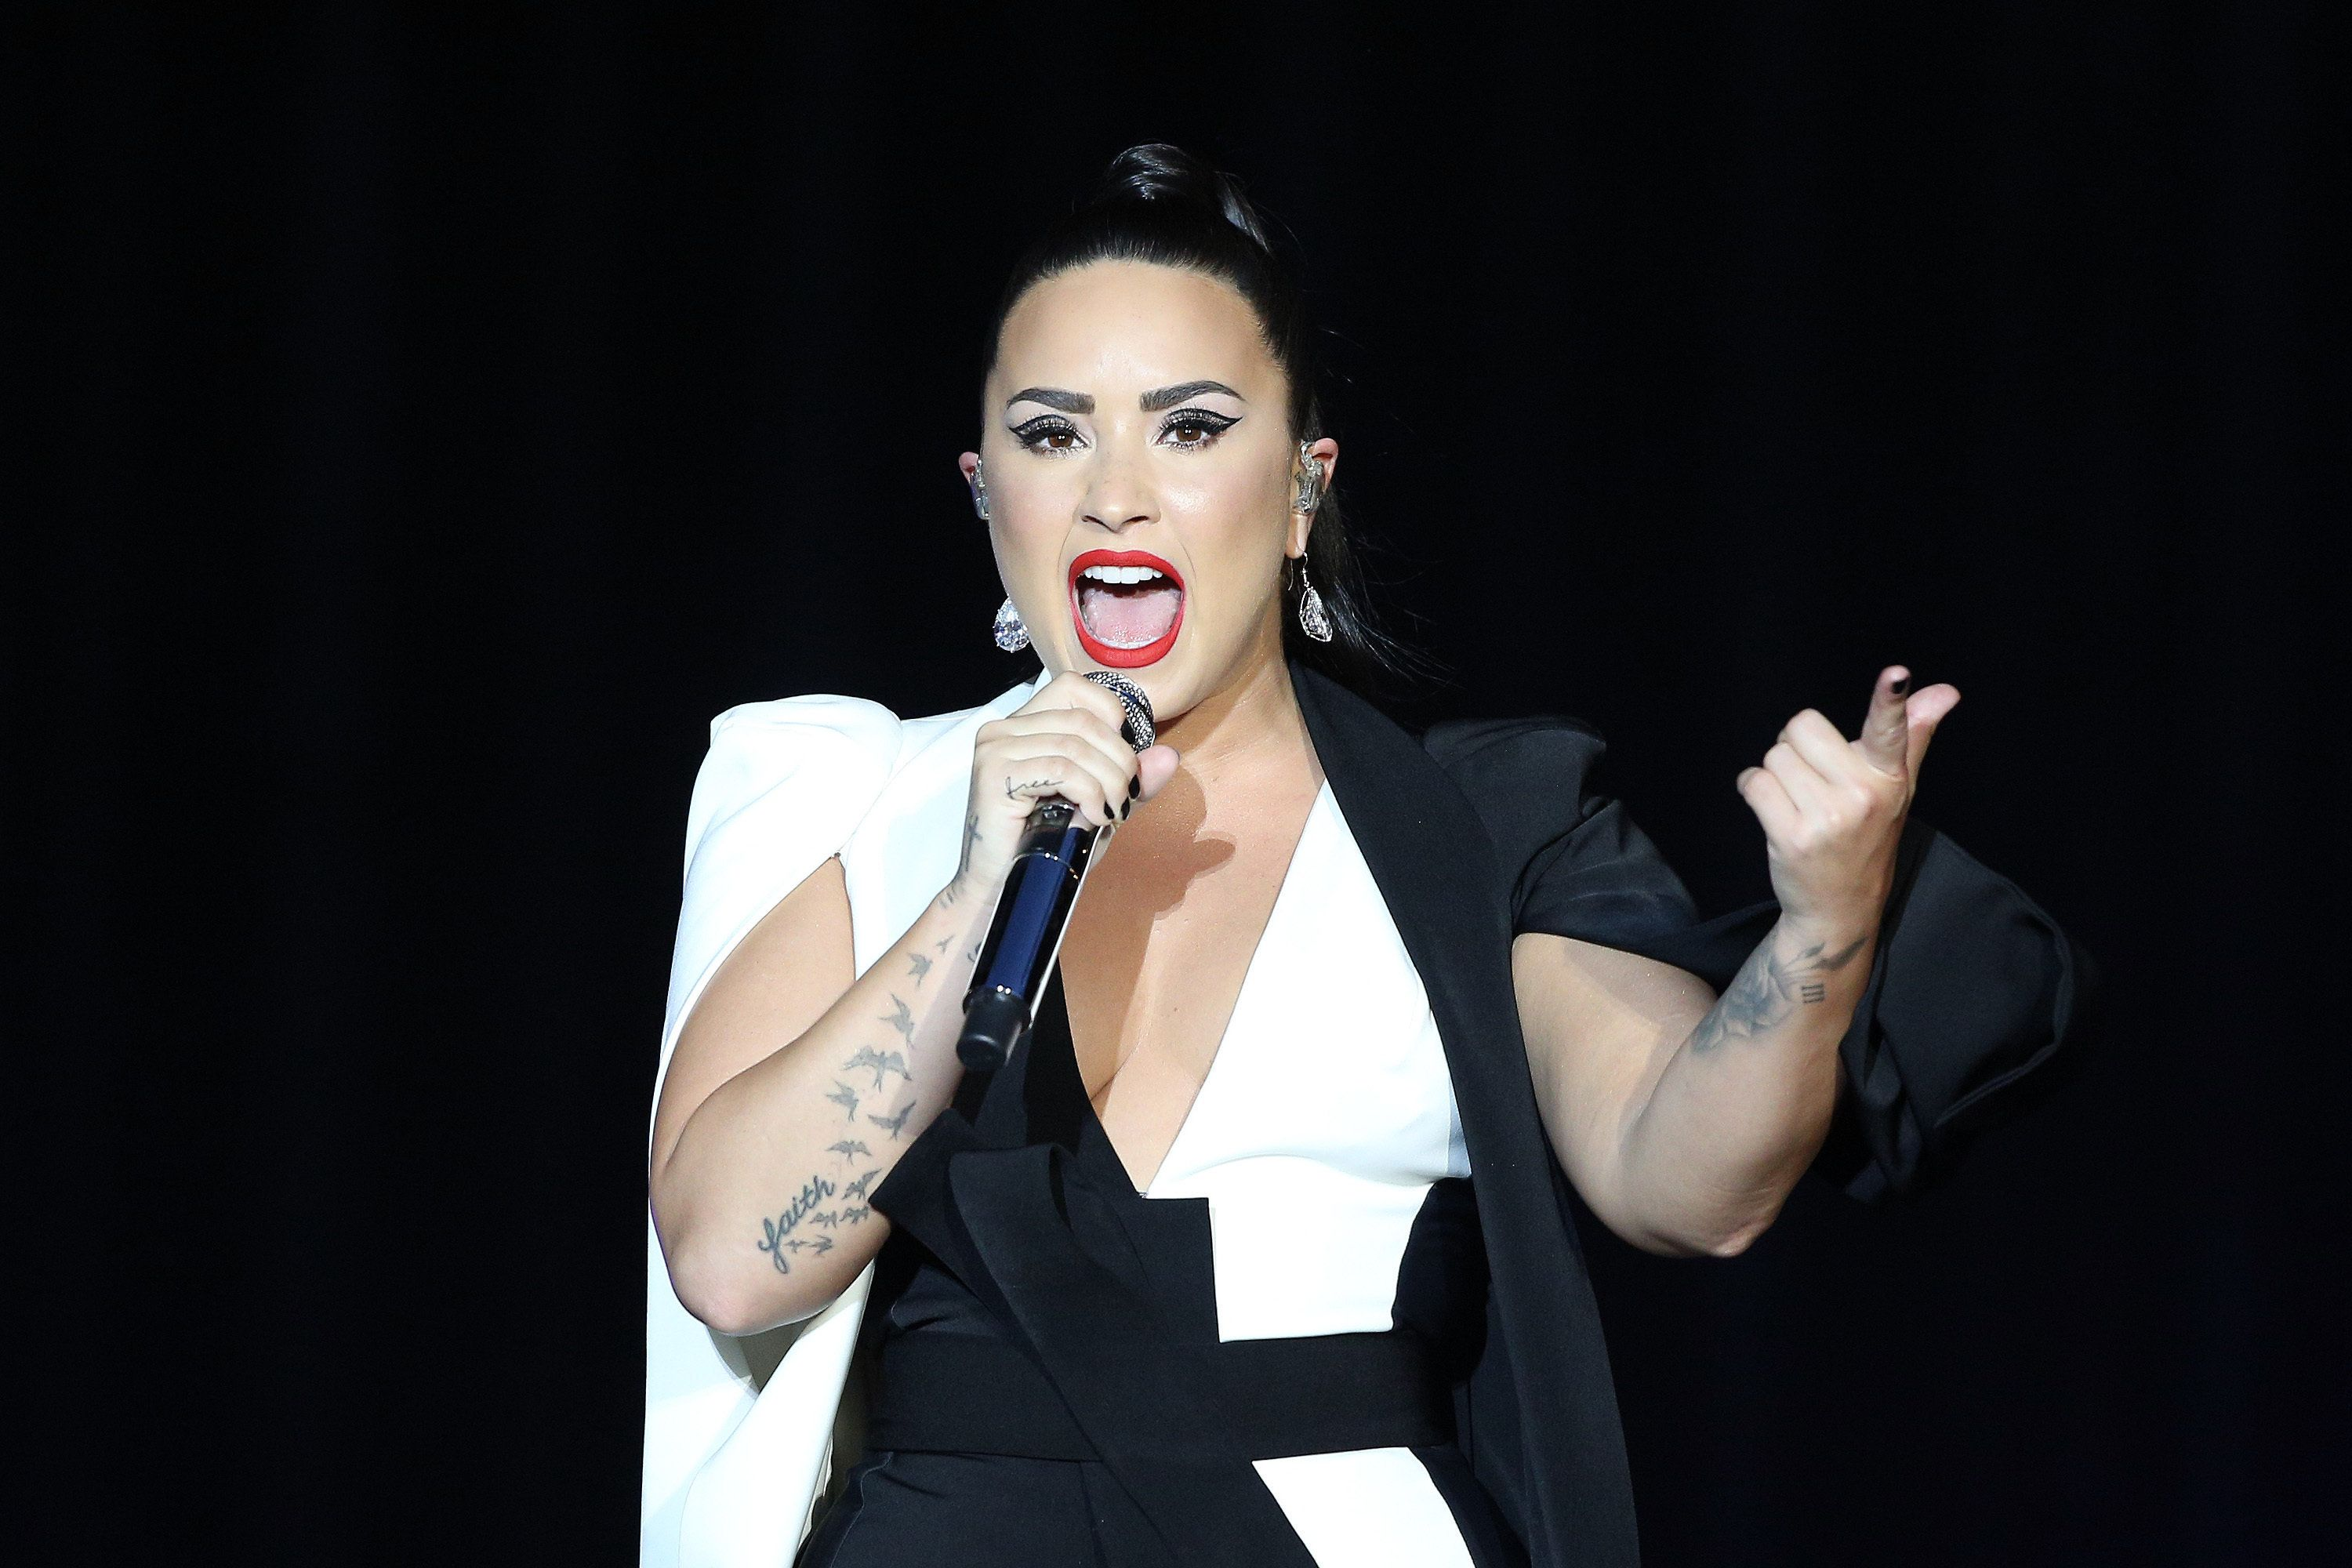 Demi Lovato Says She's 'Sober And Alive' As She Asks For 'Time To